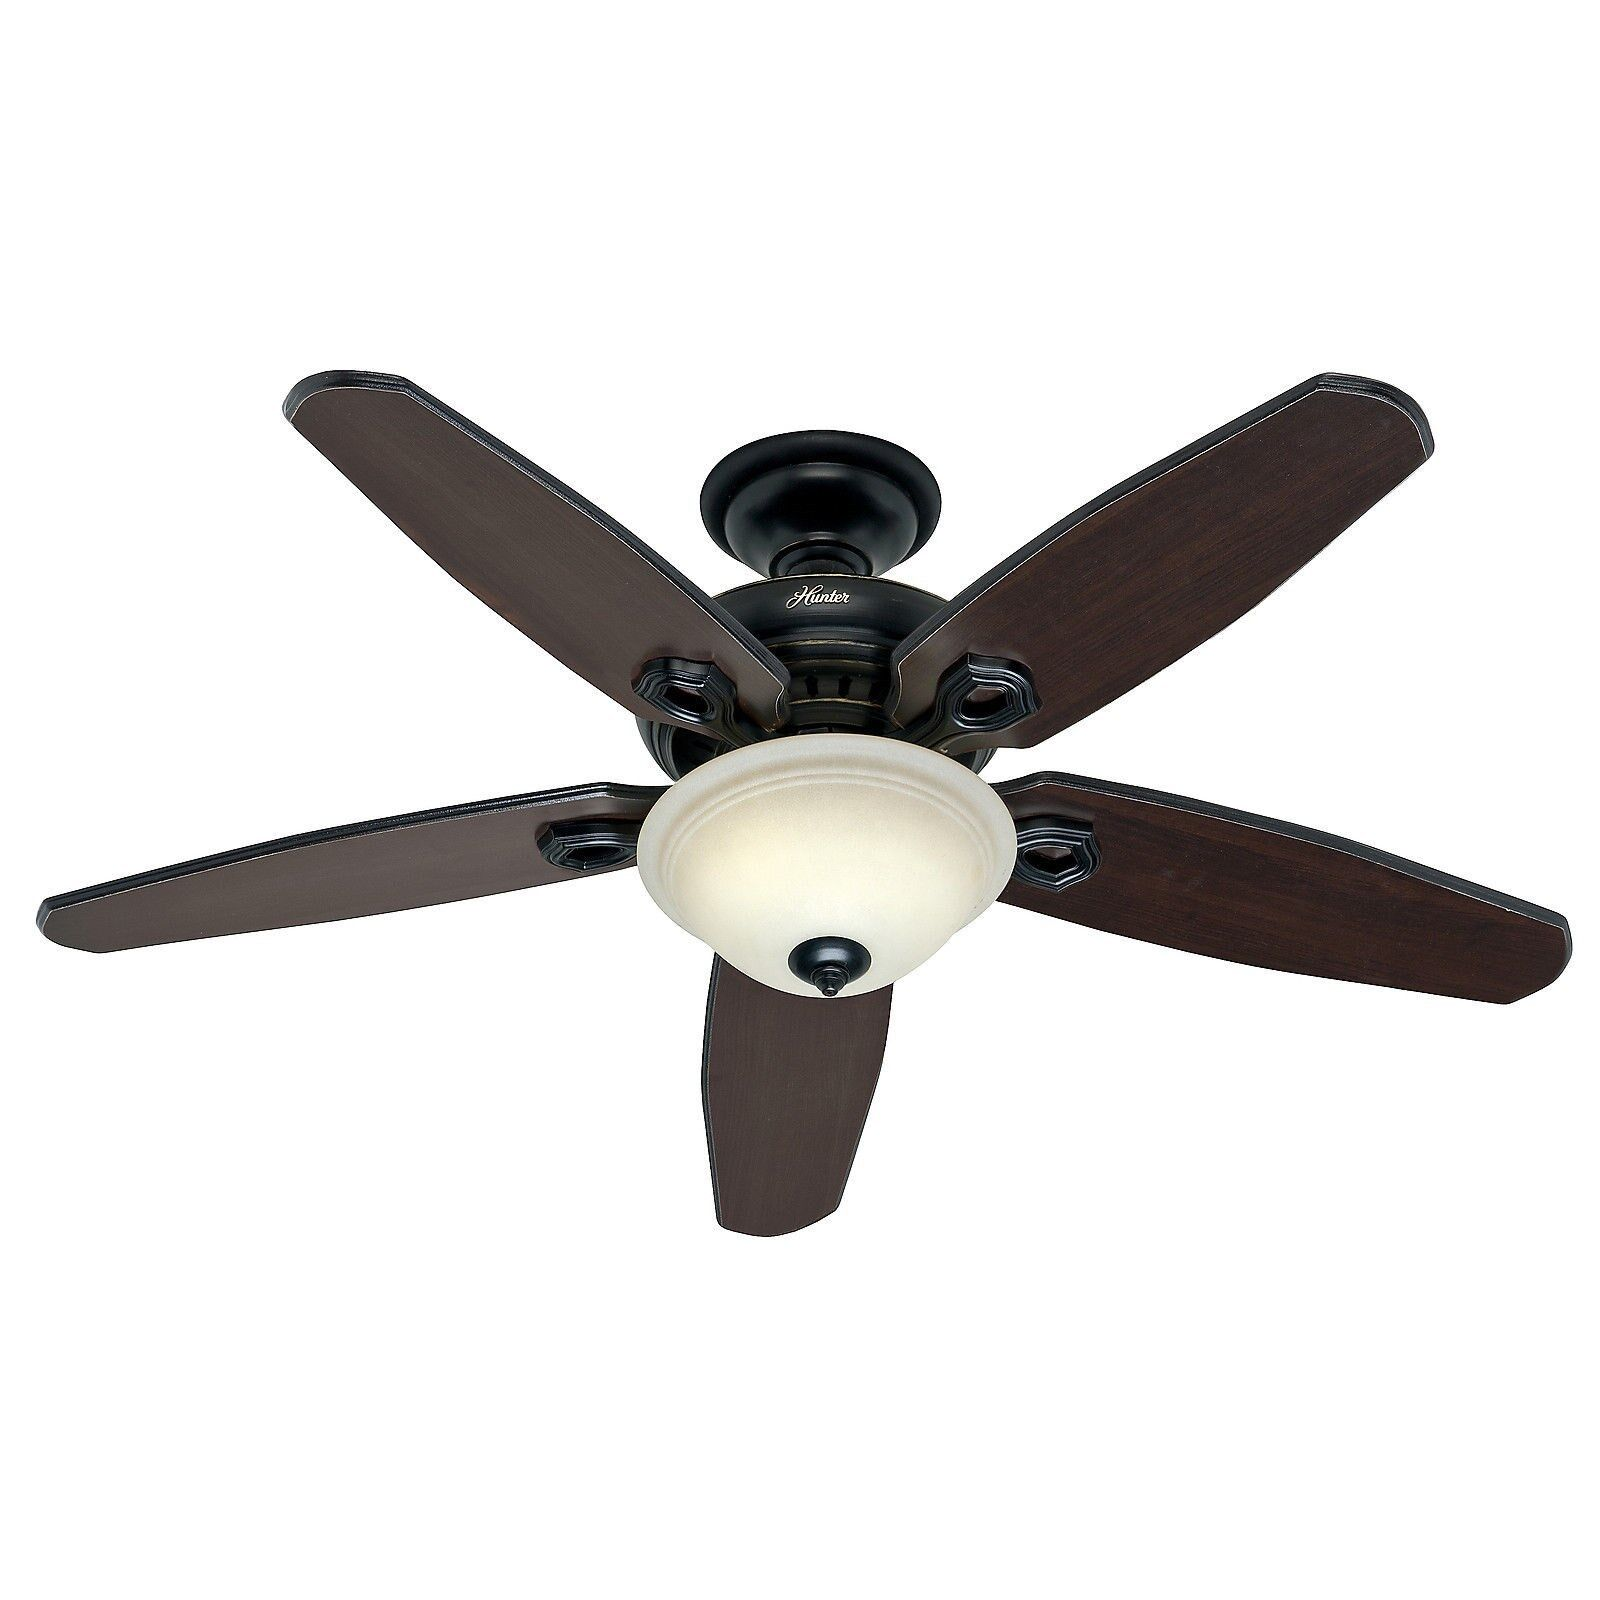 Control Ceiling Fan : Hunter in basque black ceiling fan with light remote